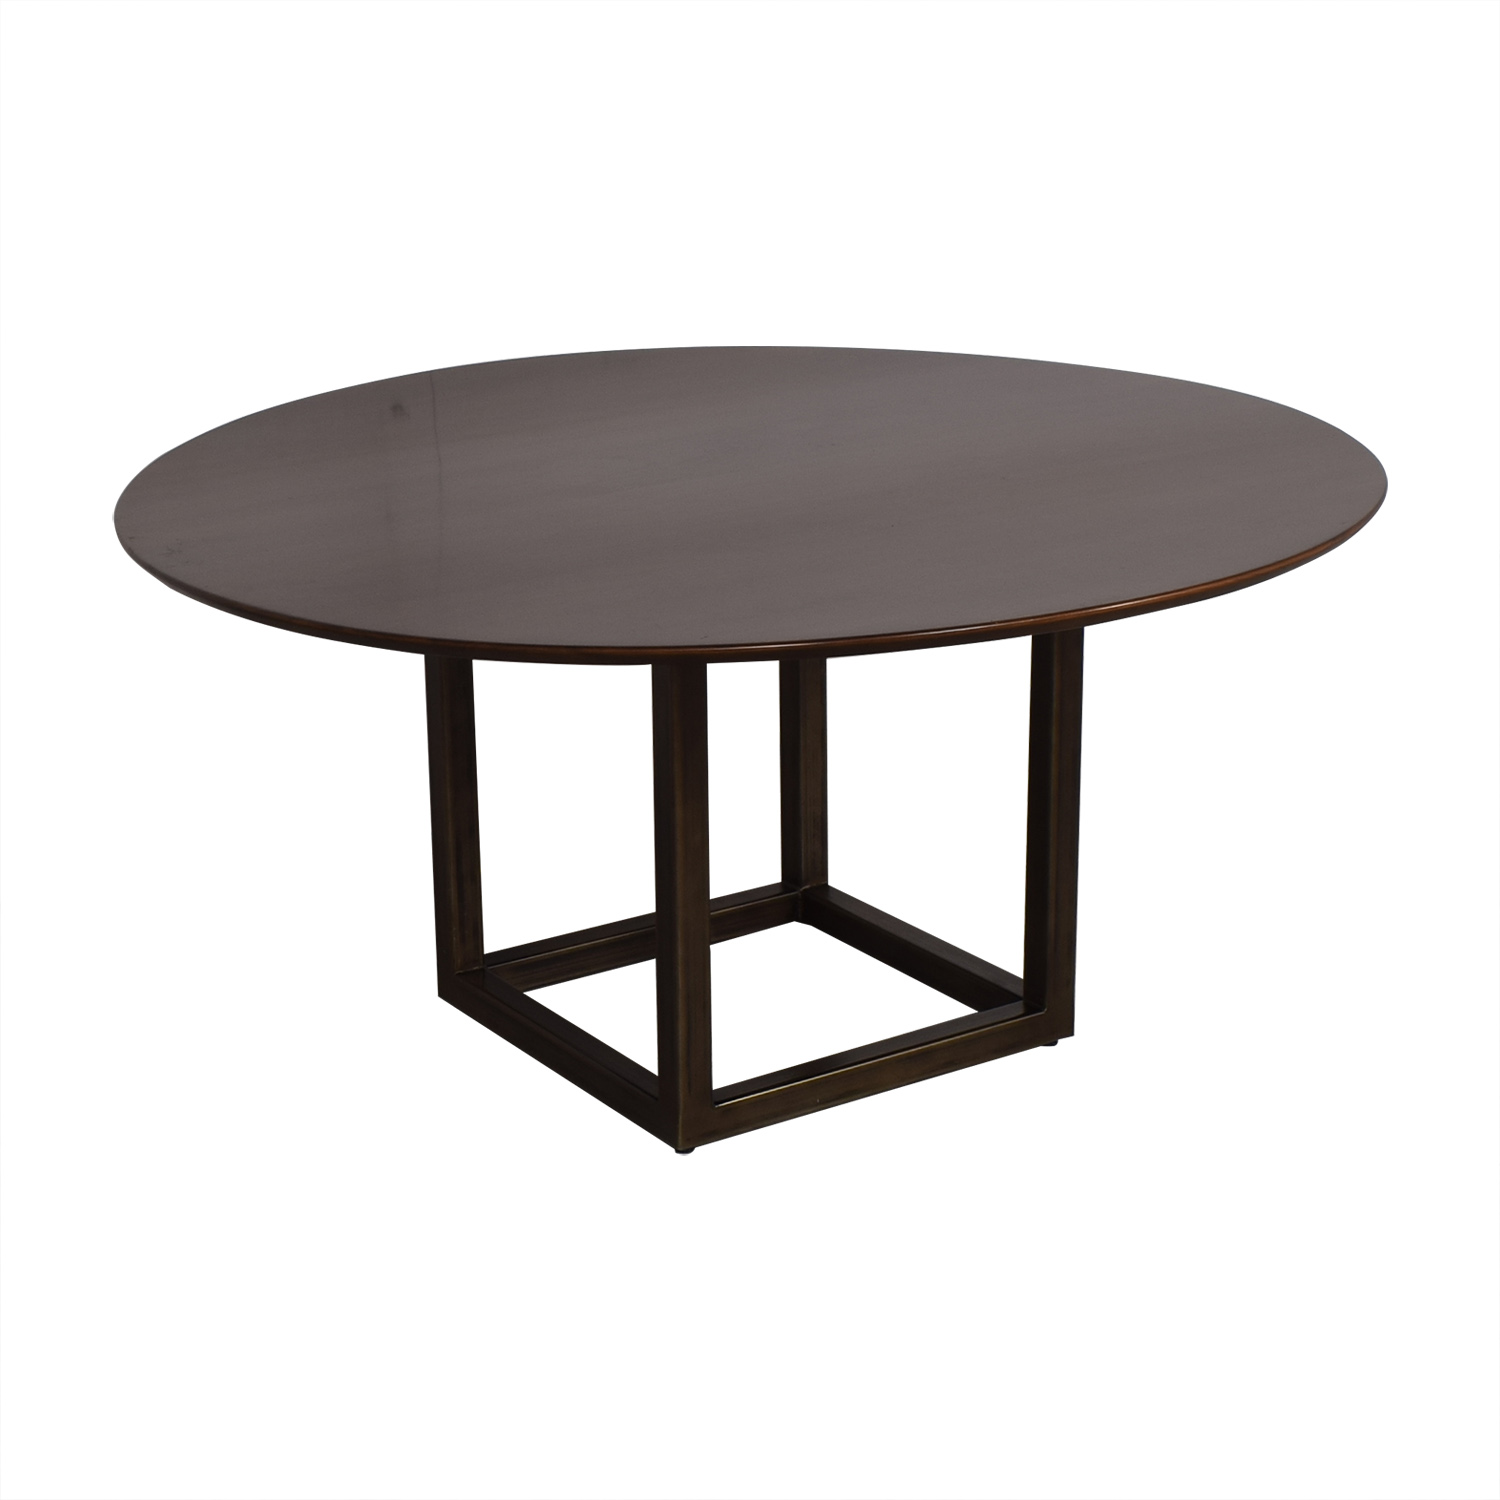 shop  Modern Round Dining Table online